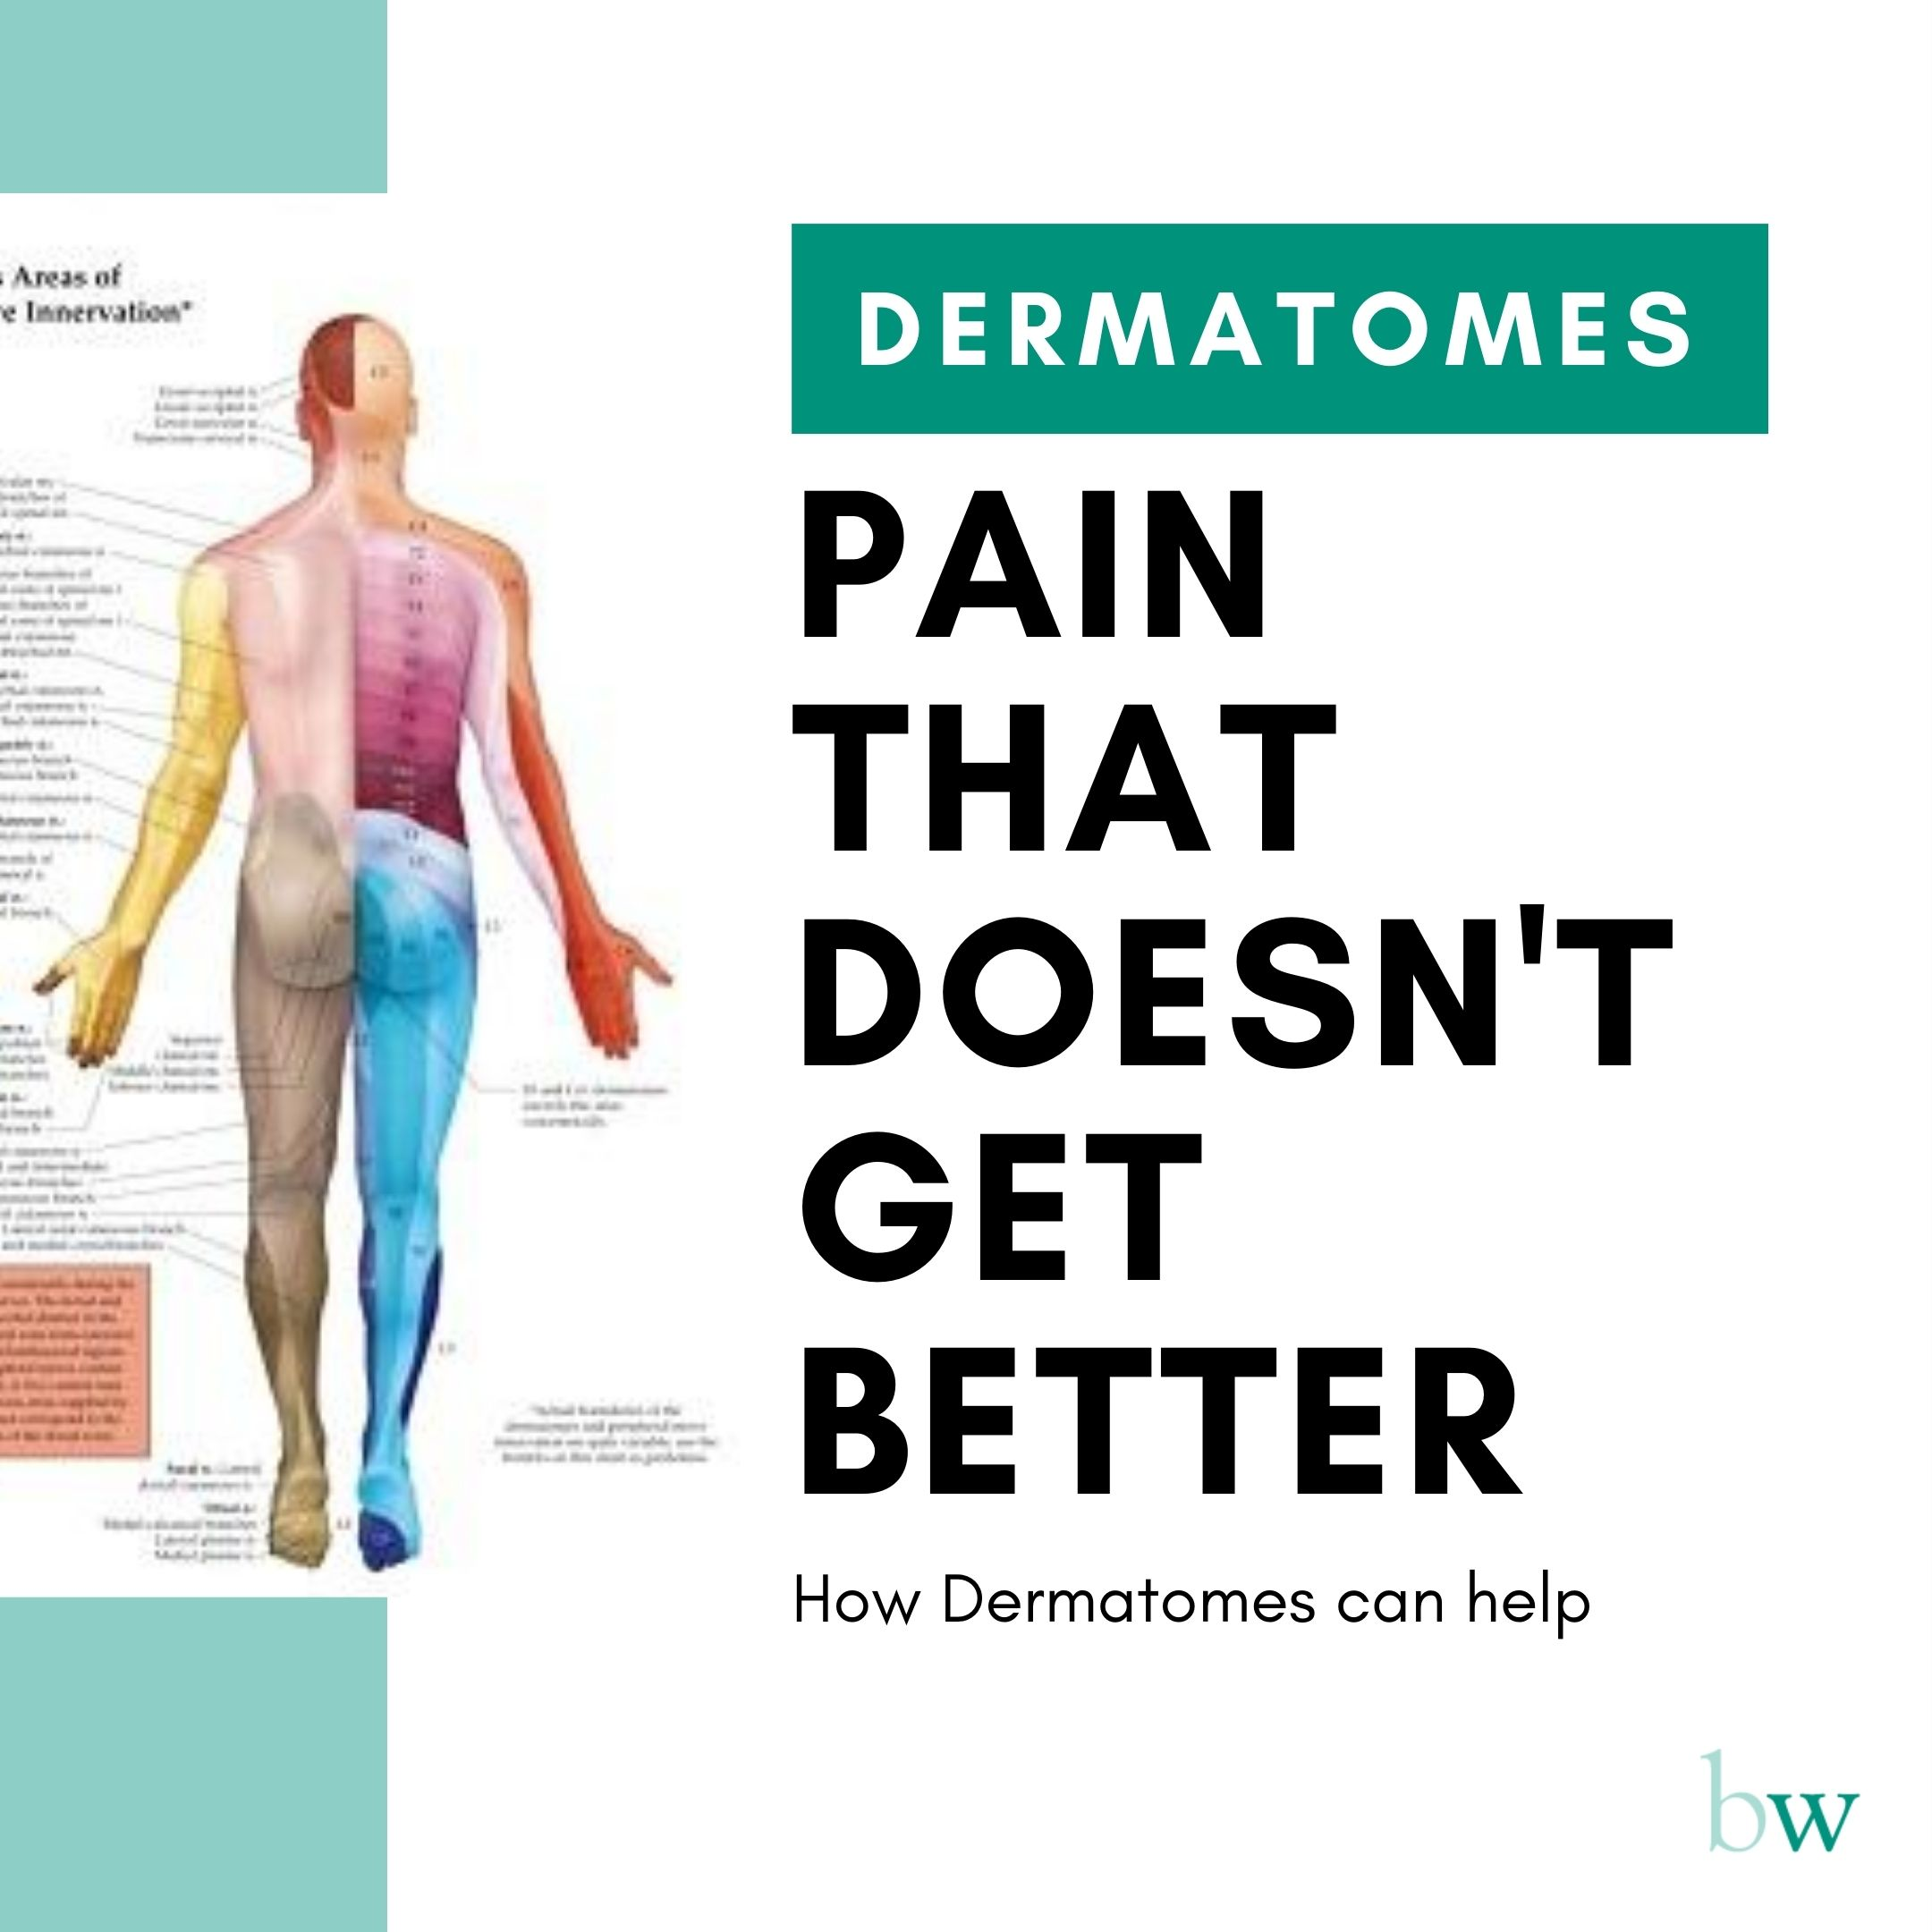 Dermatomes and nerve pain that doesn't get better at Bodyworks Clinic Marbella